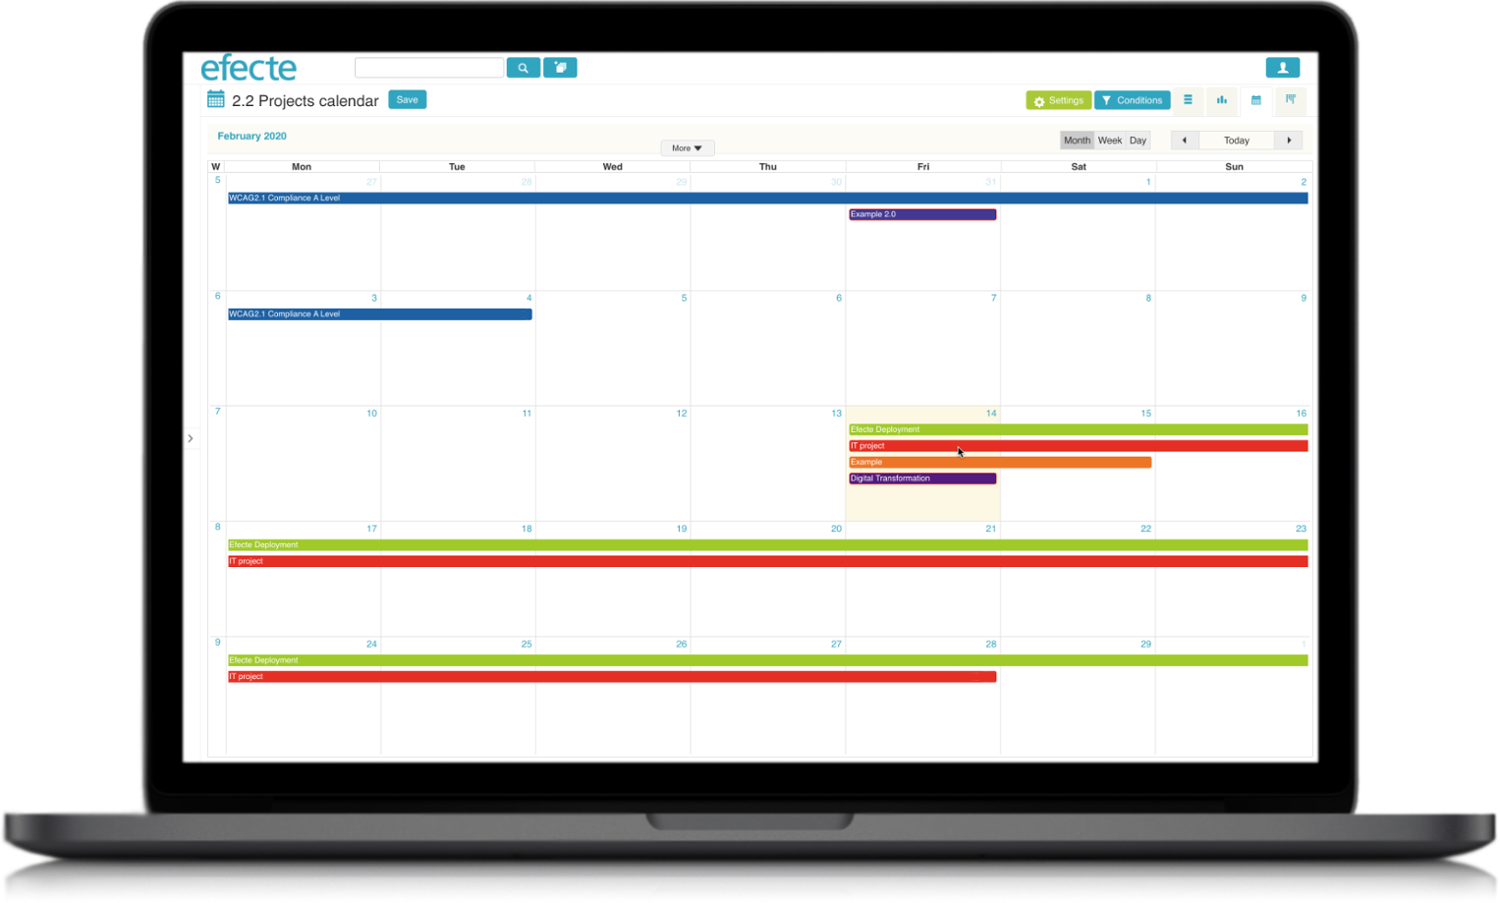 Project Management Calendar View